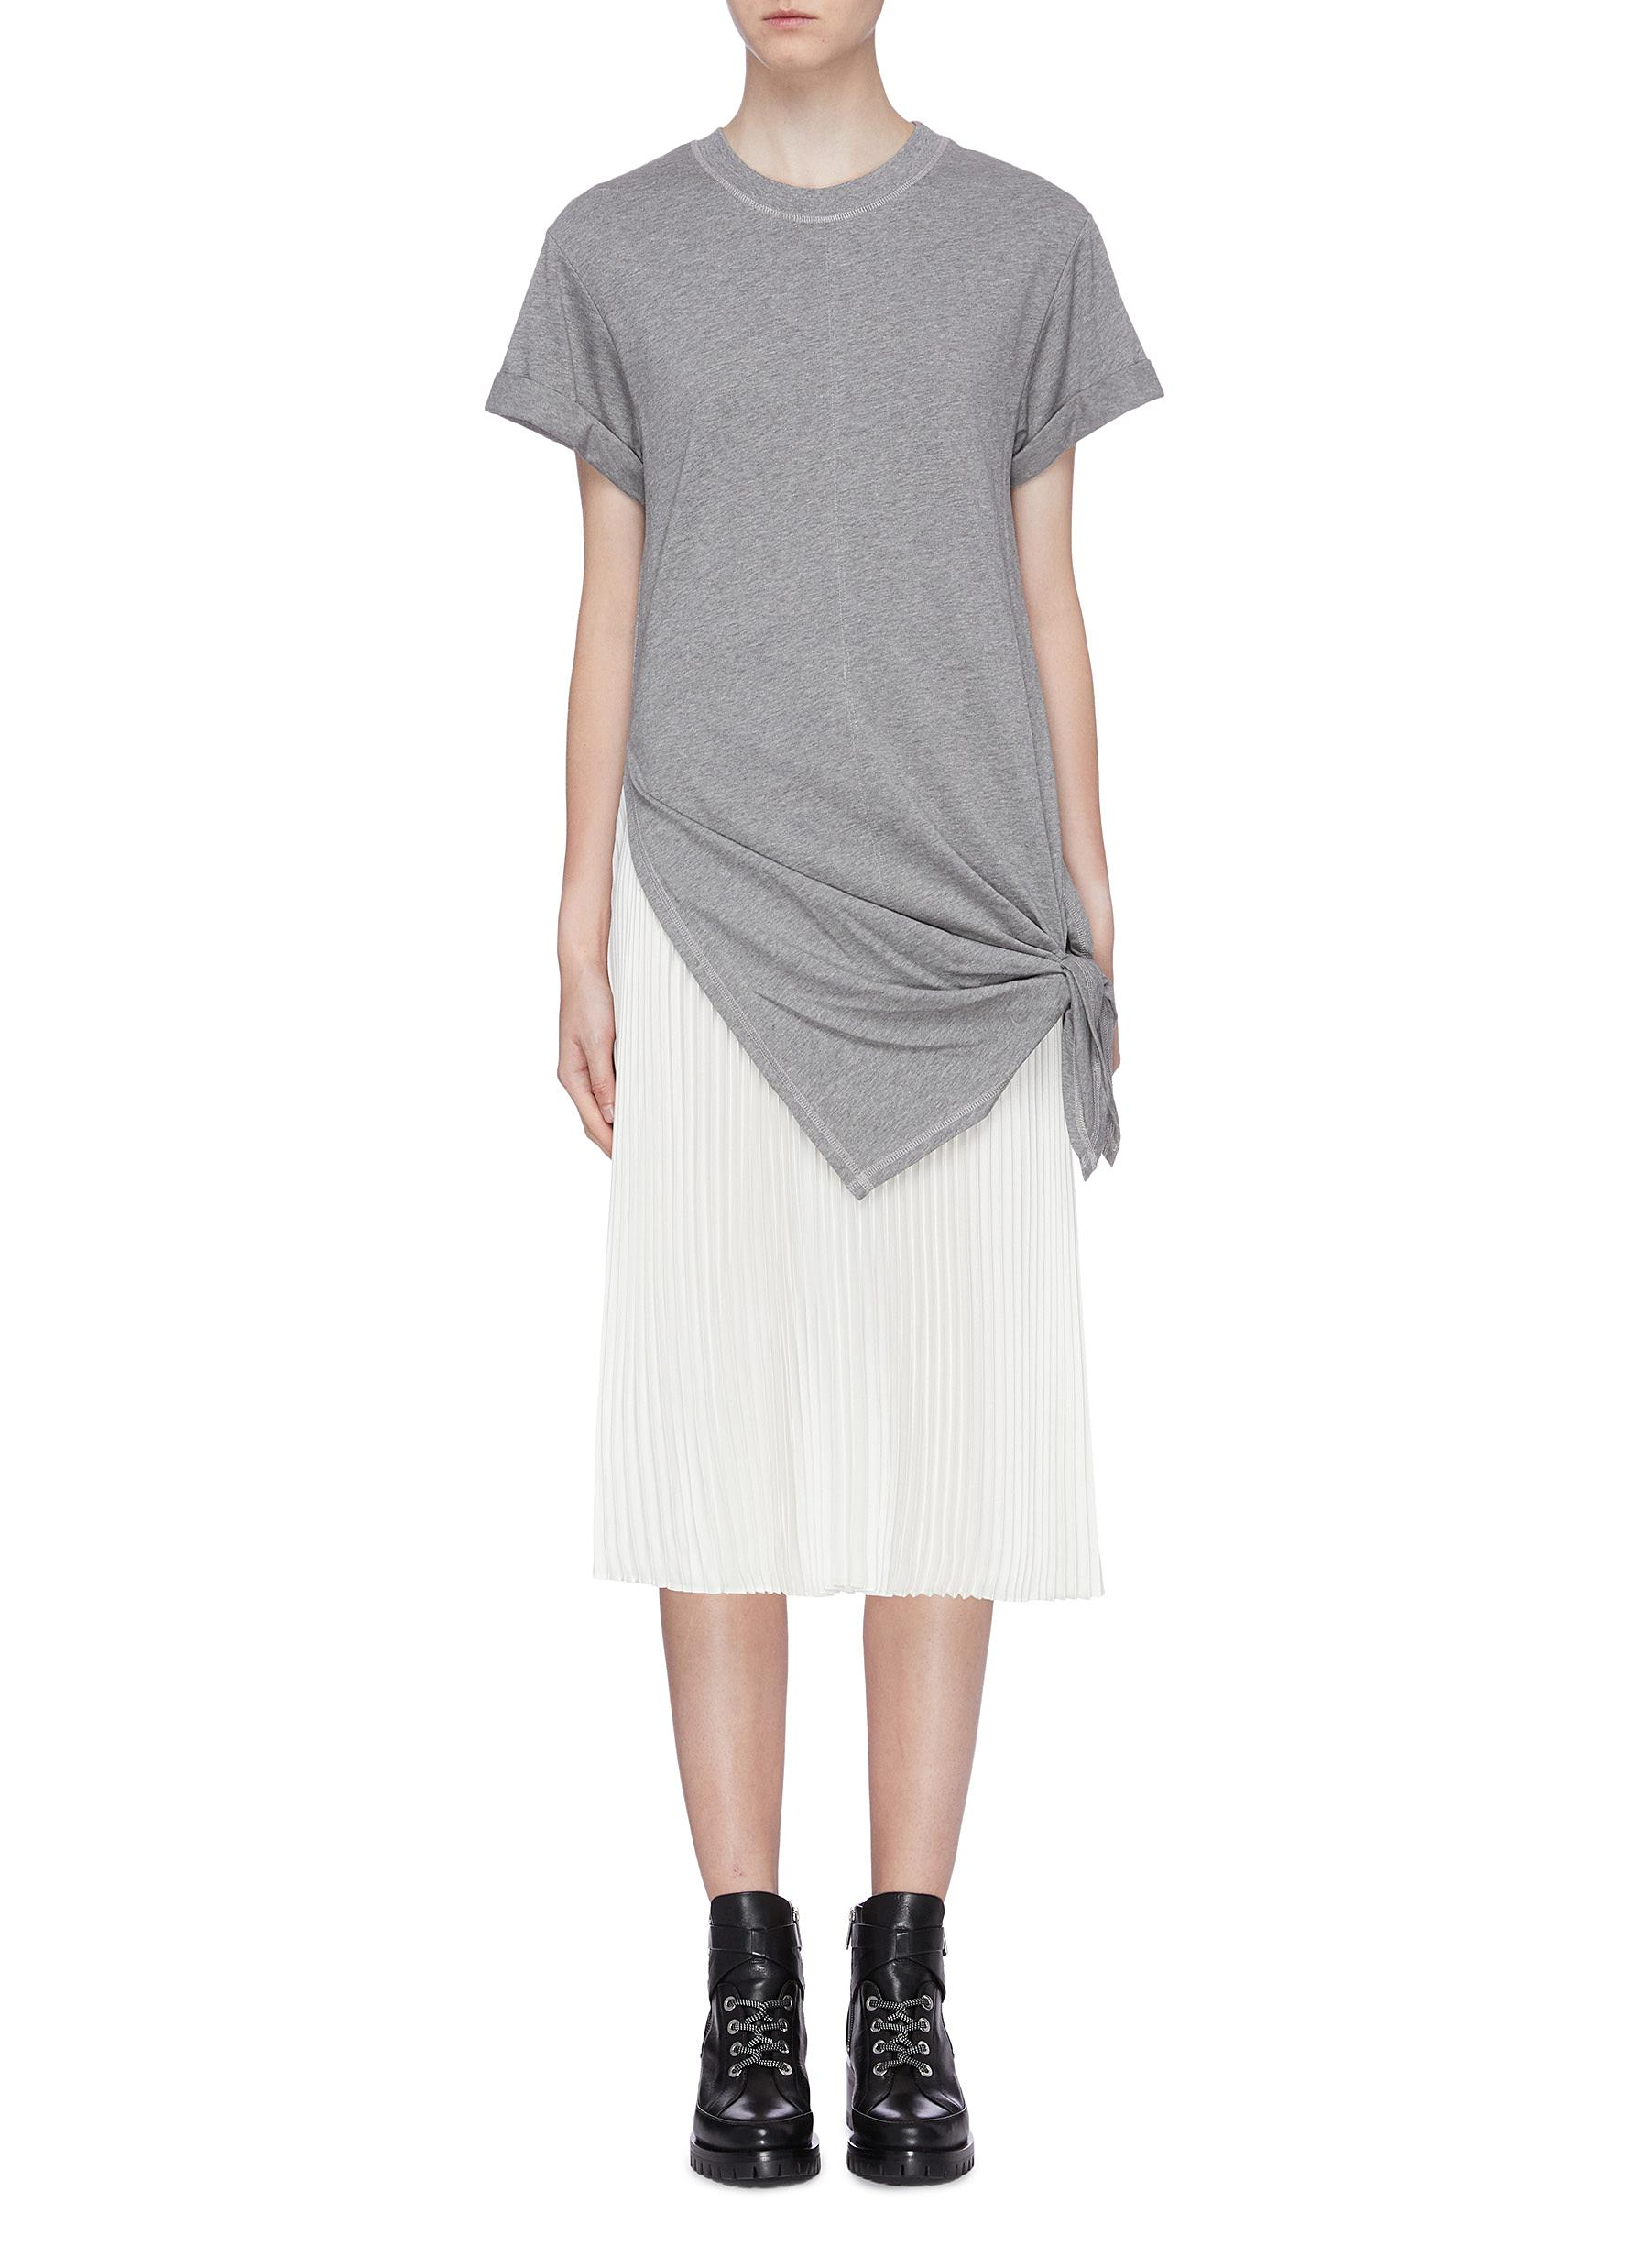 Tie side pleated underlay T-shirt dress by 3.1 Phillip Lim